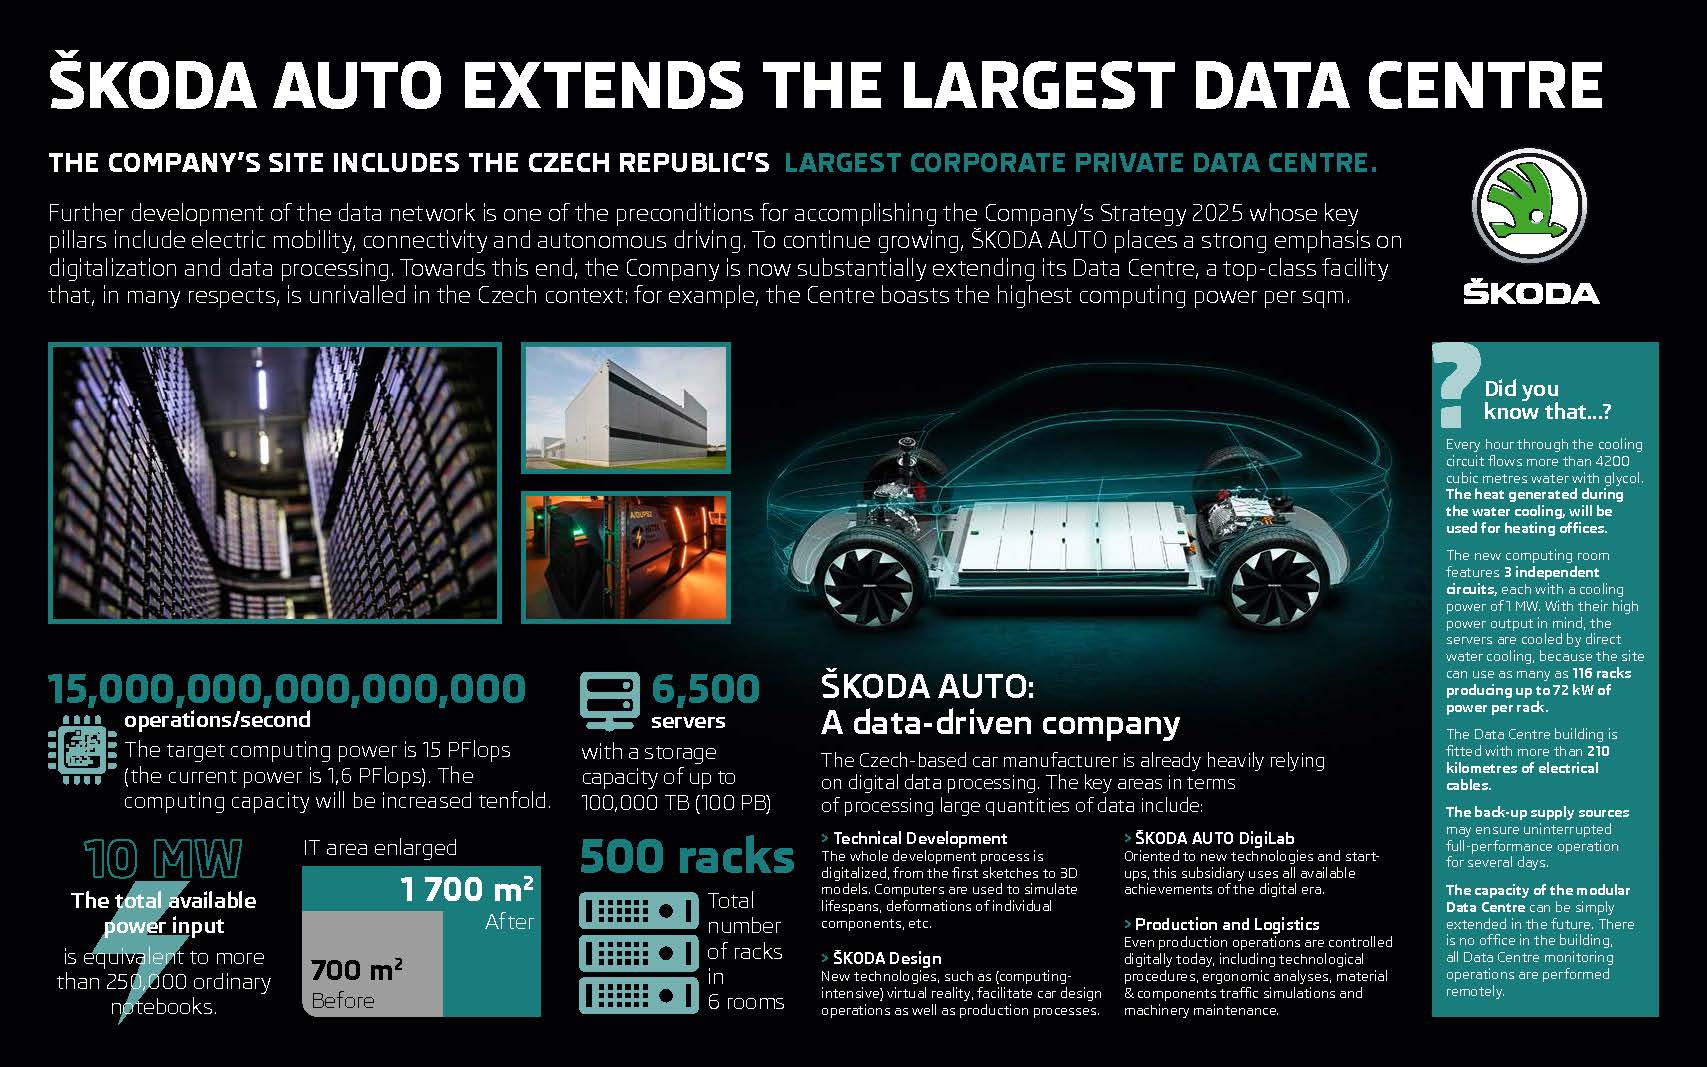 Infographic: ŠKODA AUTO extends largest corporate data centre in the Czech Republic